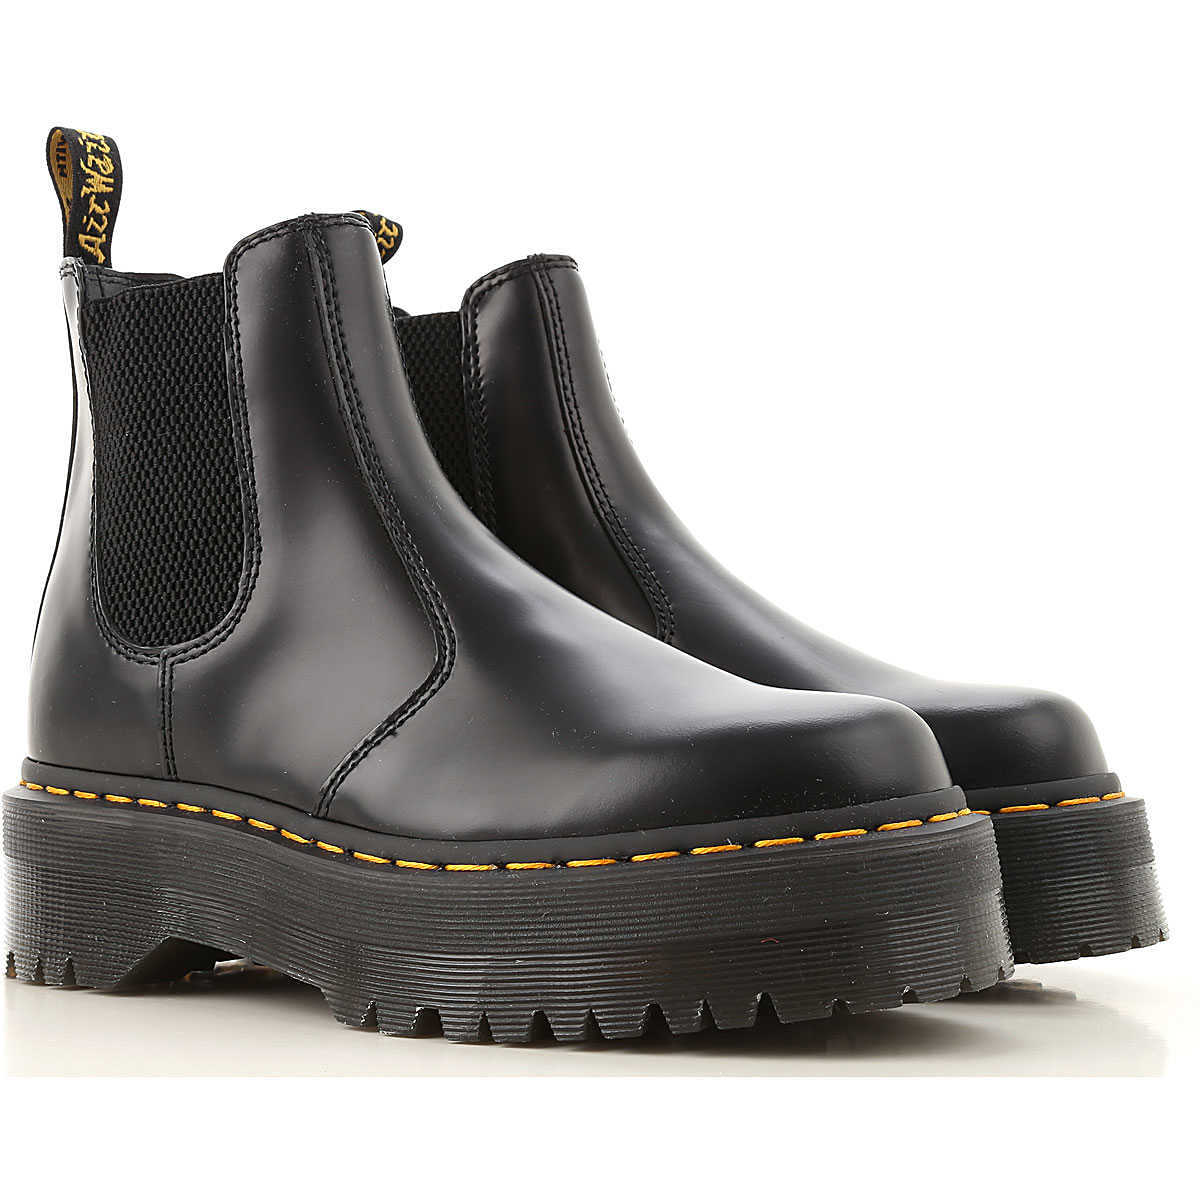 Dr. Martens Chelsea Boots for Women Black Canada - GOOFASH - Womens BOOTS